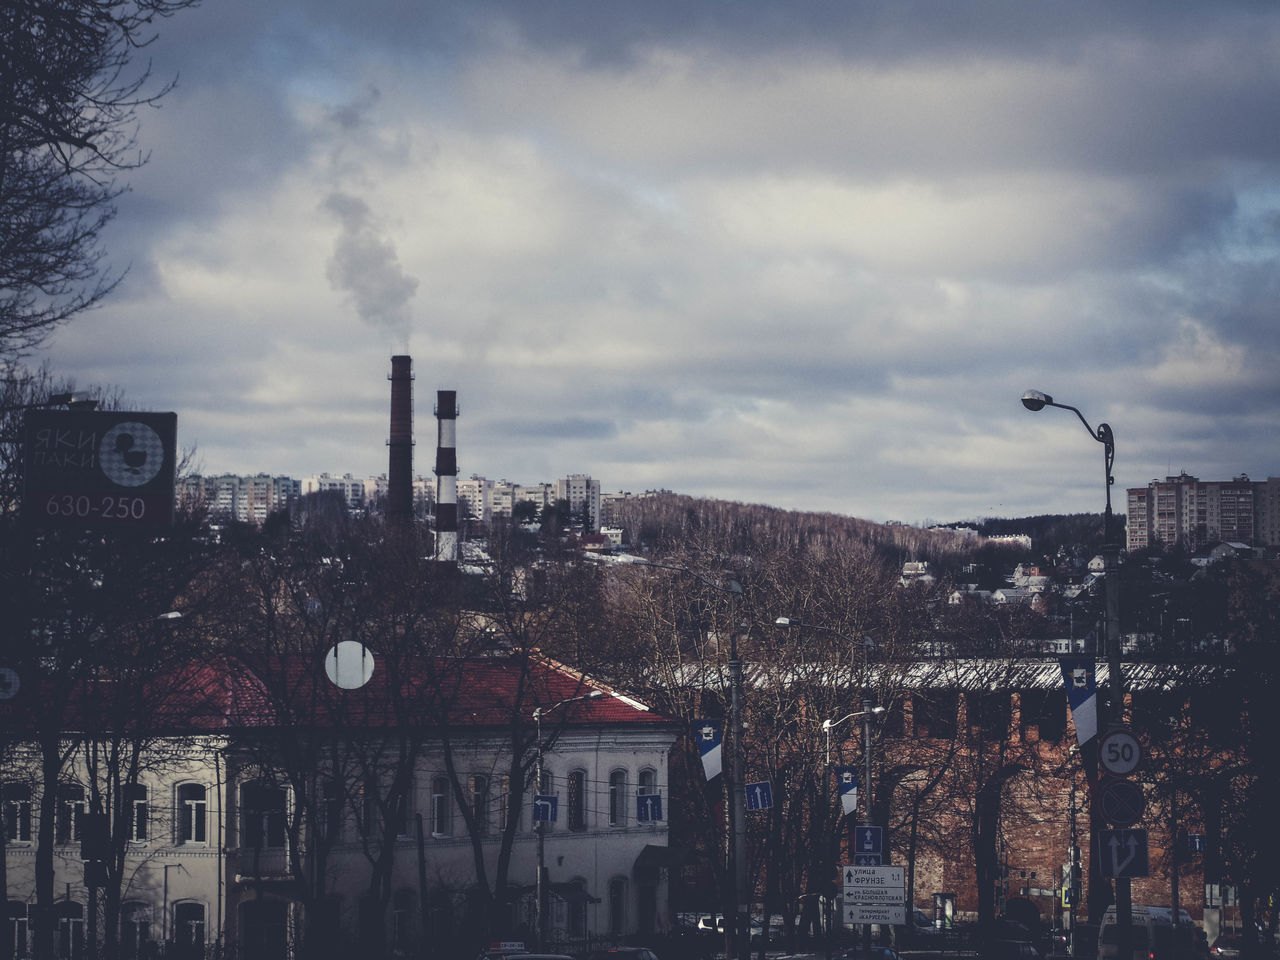 architecture, building exterior, sky, cloud - sky, built structure, city, building, nature, no people, street, outdoors, industry, street light, day, residential district, cityscape, smoke stack, factory, tall - high, pollution